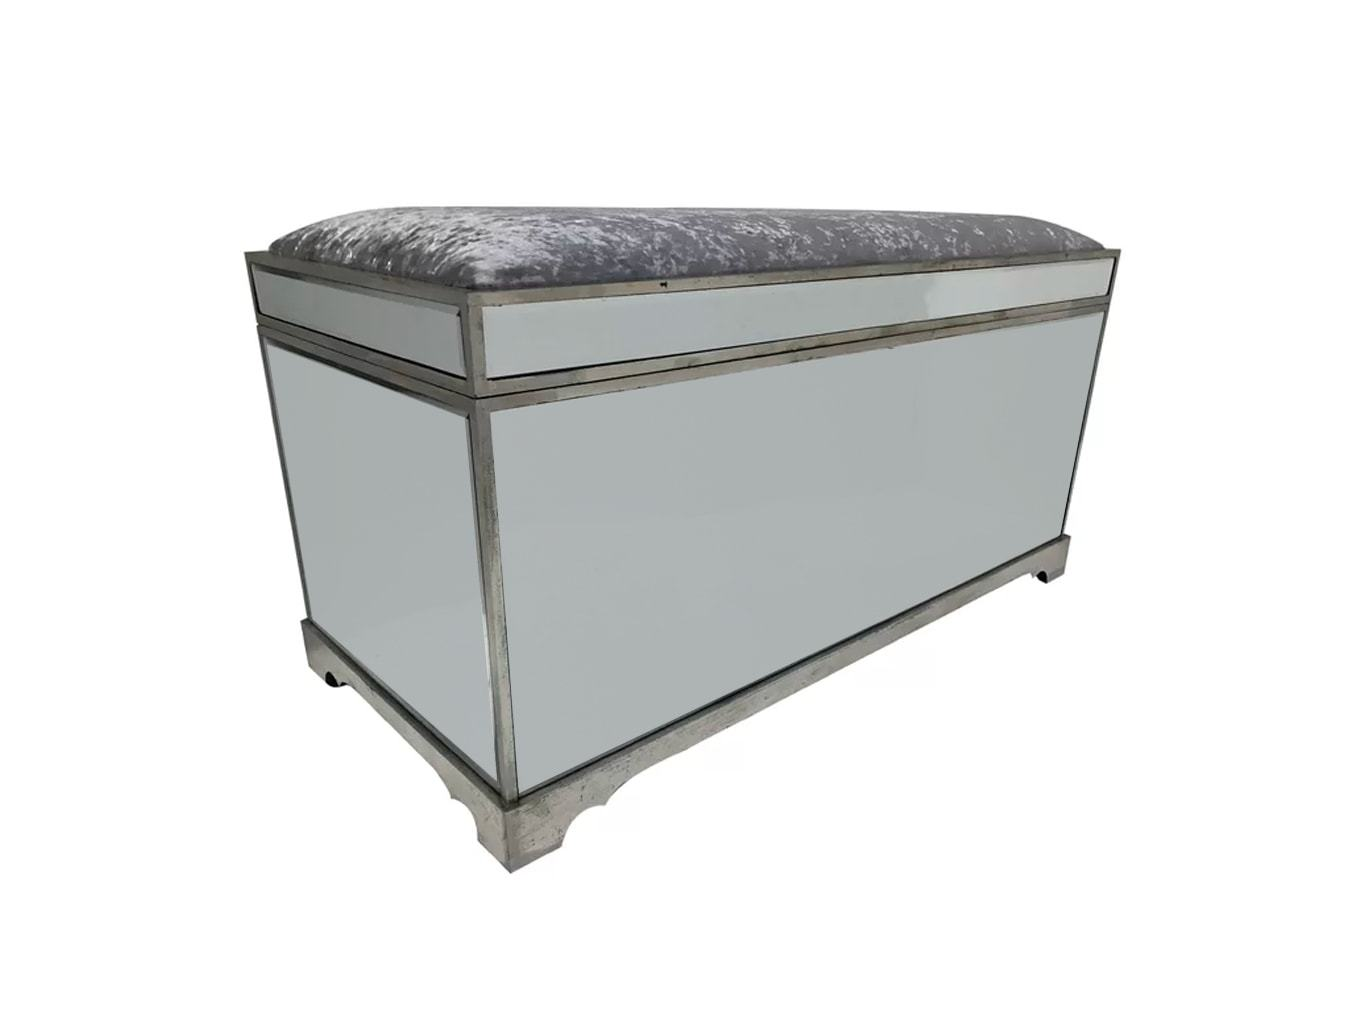 Mirrored Trunk Ottoman Blanket Storage with Velvet Upholstery Seat